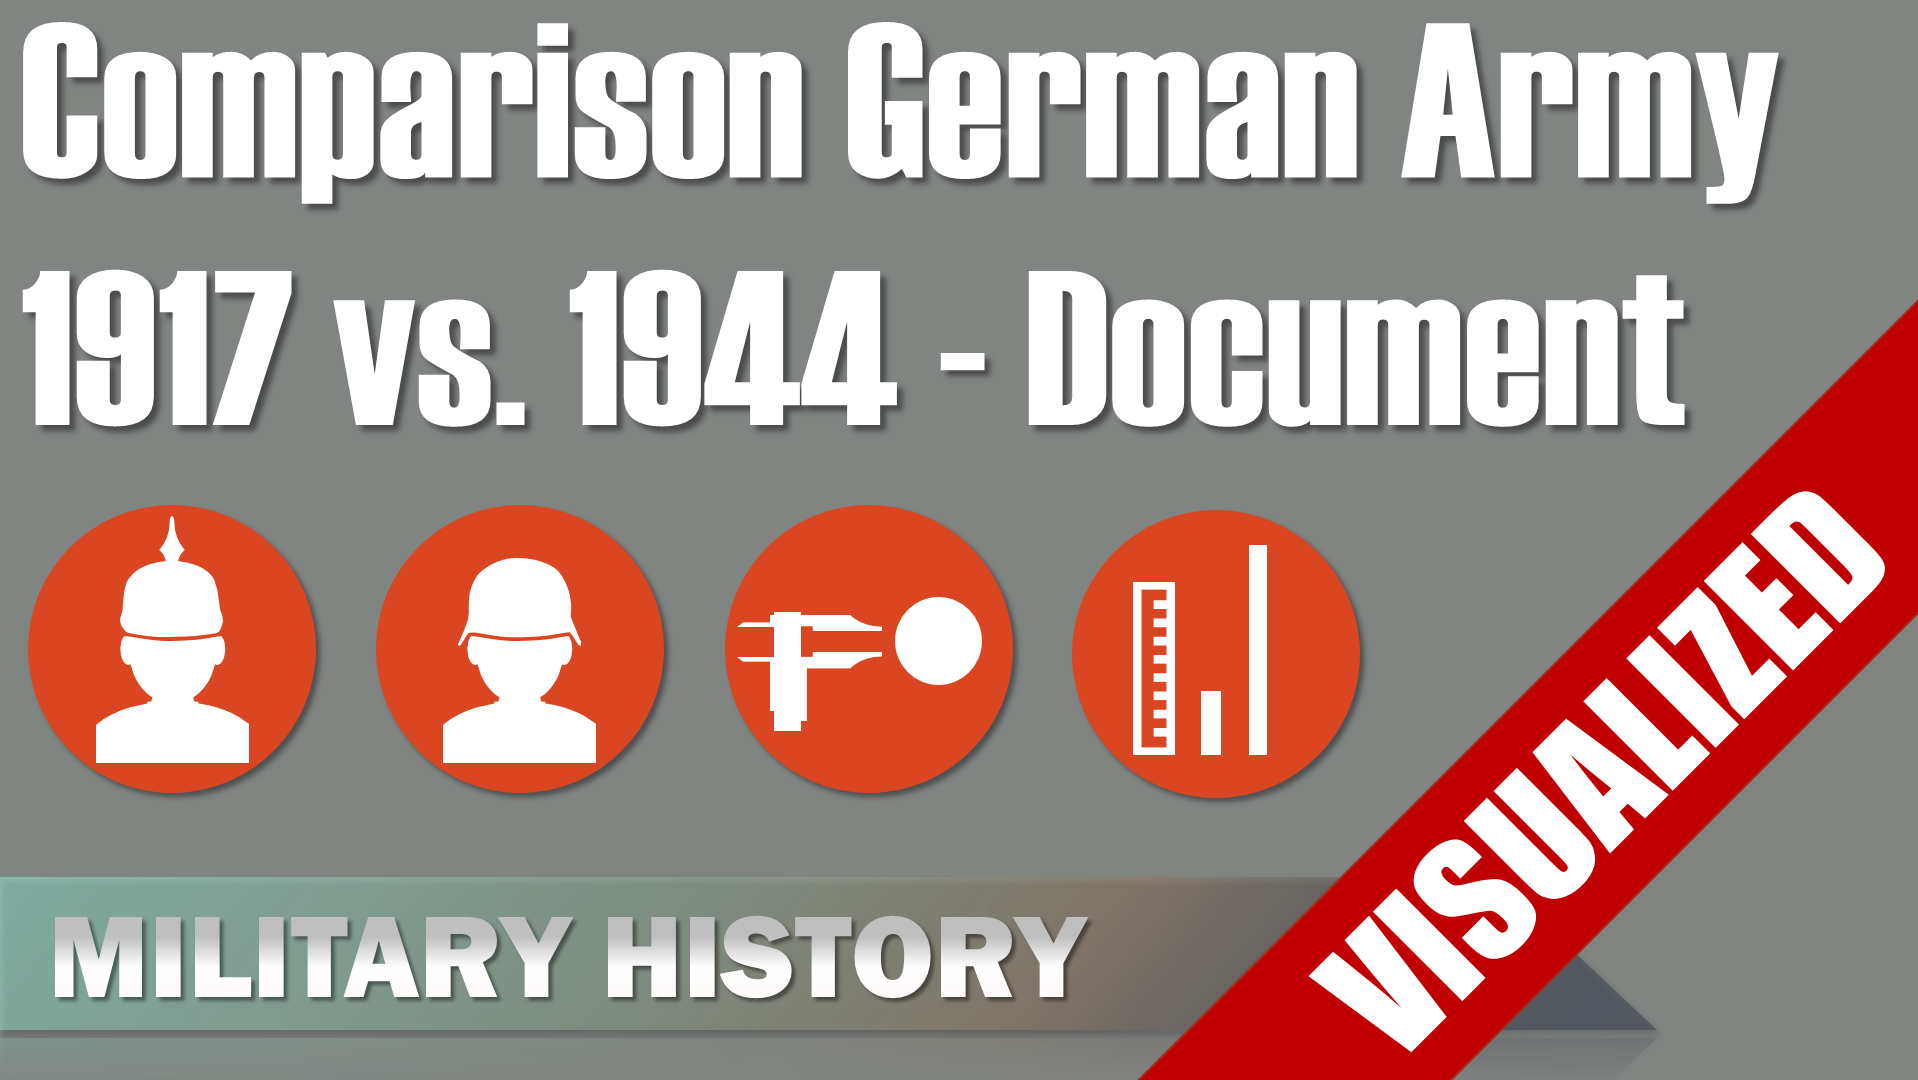 Comparison German Field Army 1917 vs 1944 [Document]